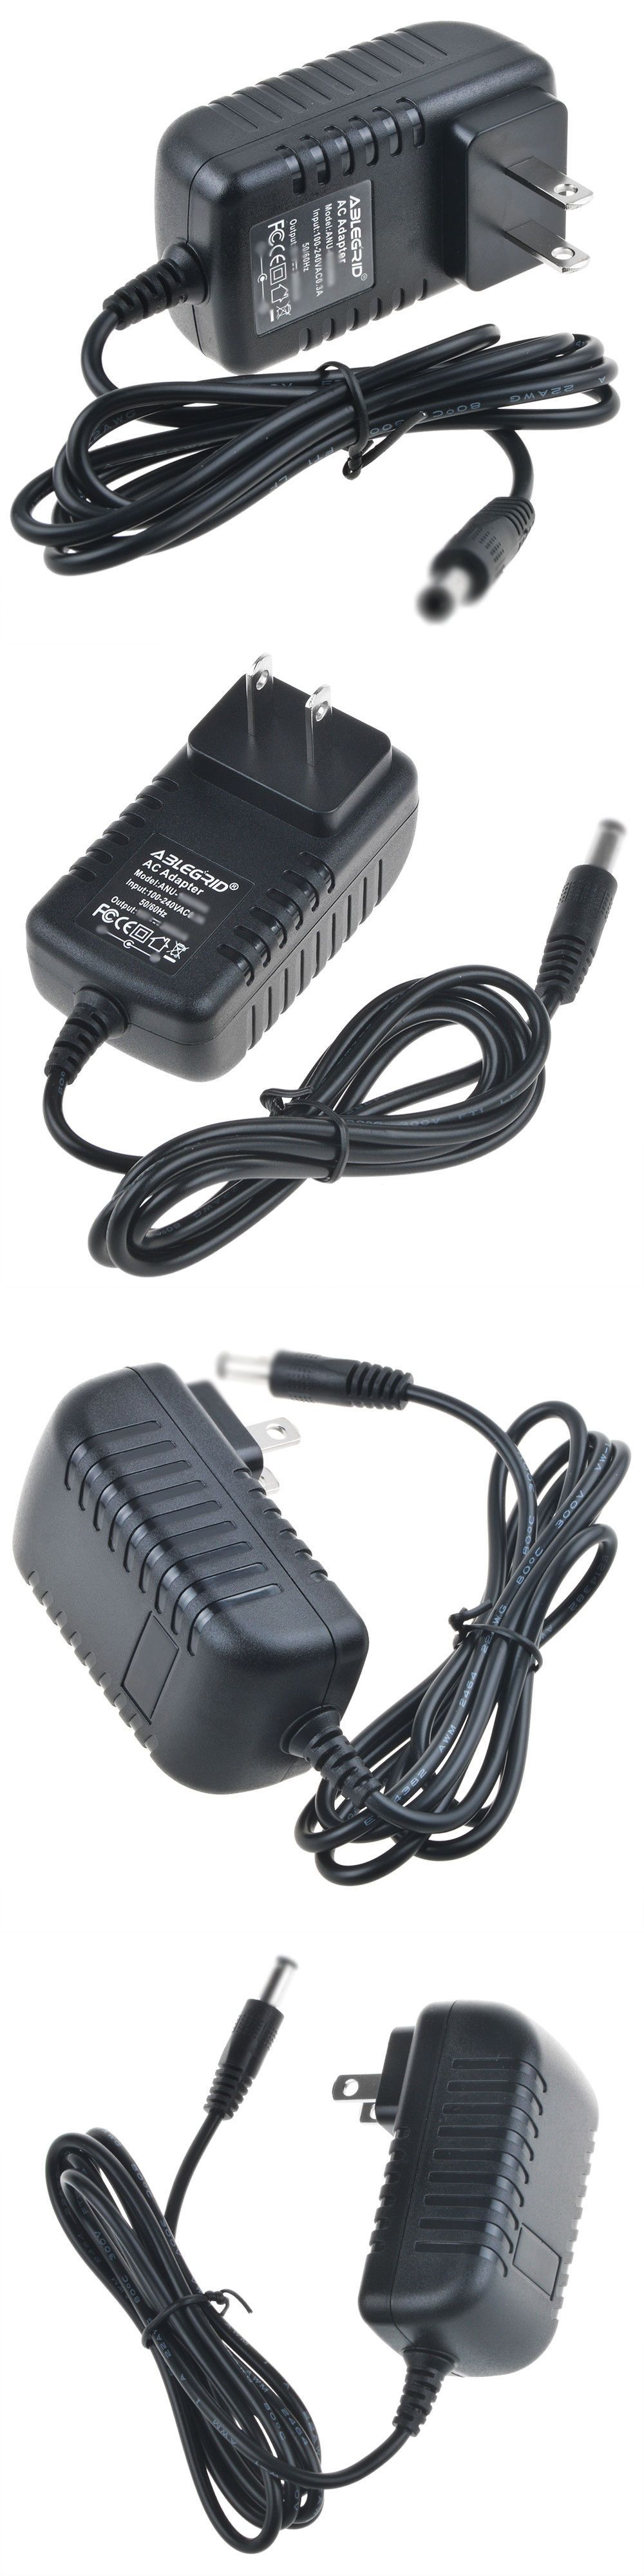 Power Supplies 101356: 12V 2A Ac Dc Adapter For Zebra Qln220